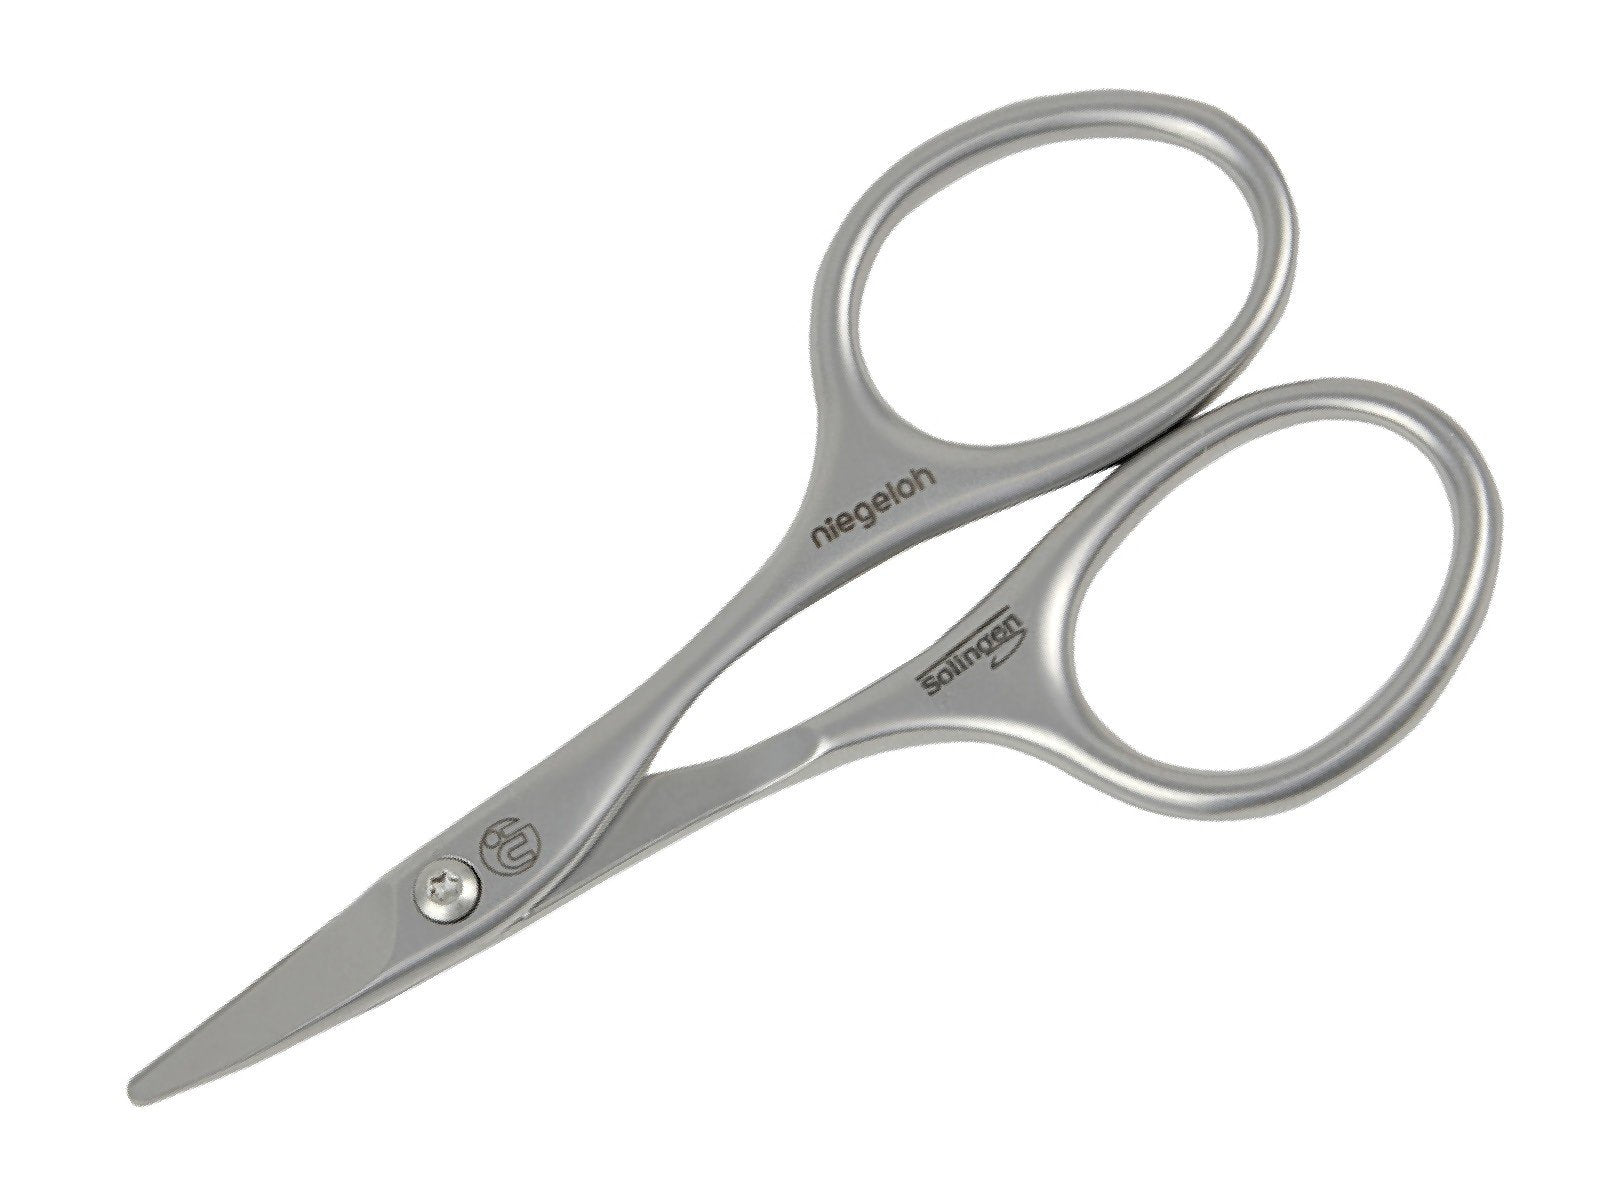 NIEGELOH STAINLESS STEEL BABY SCISSORS